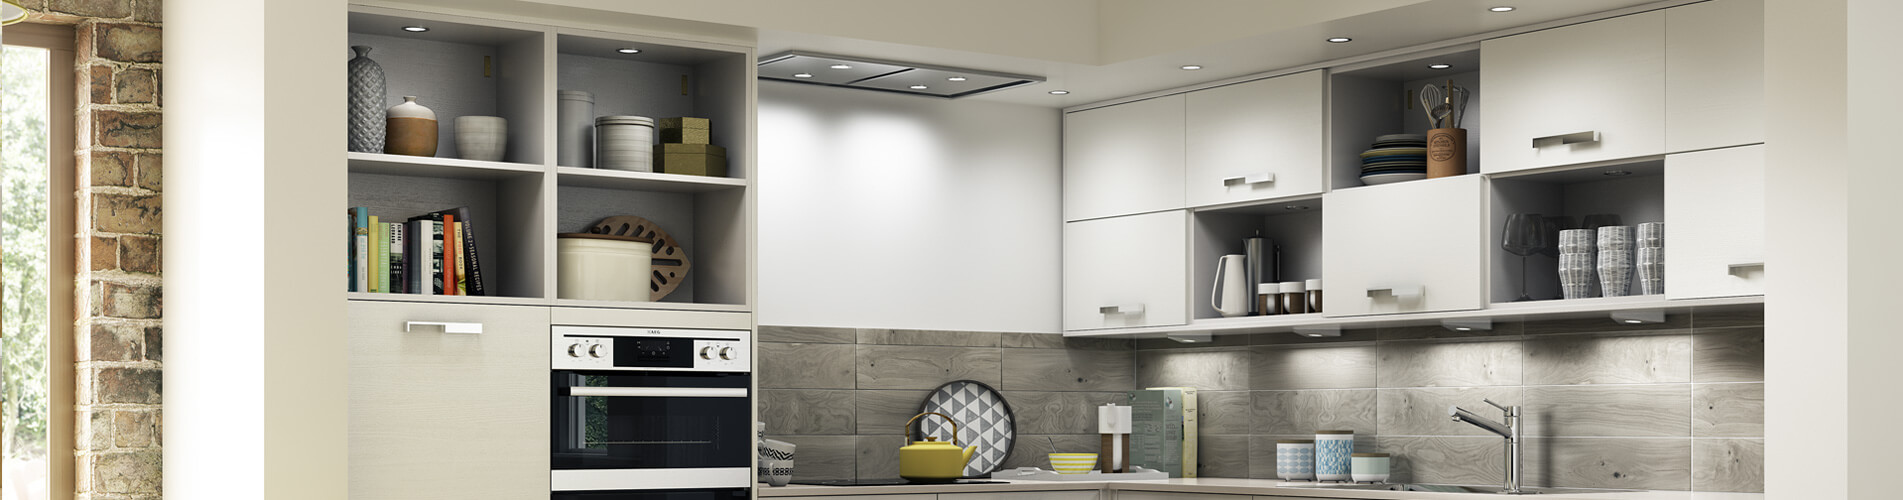 How lighting can change your kitchen space